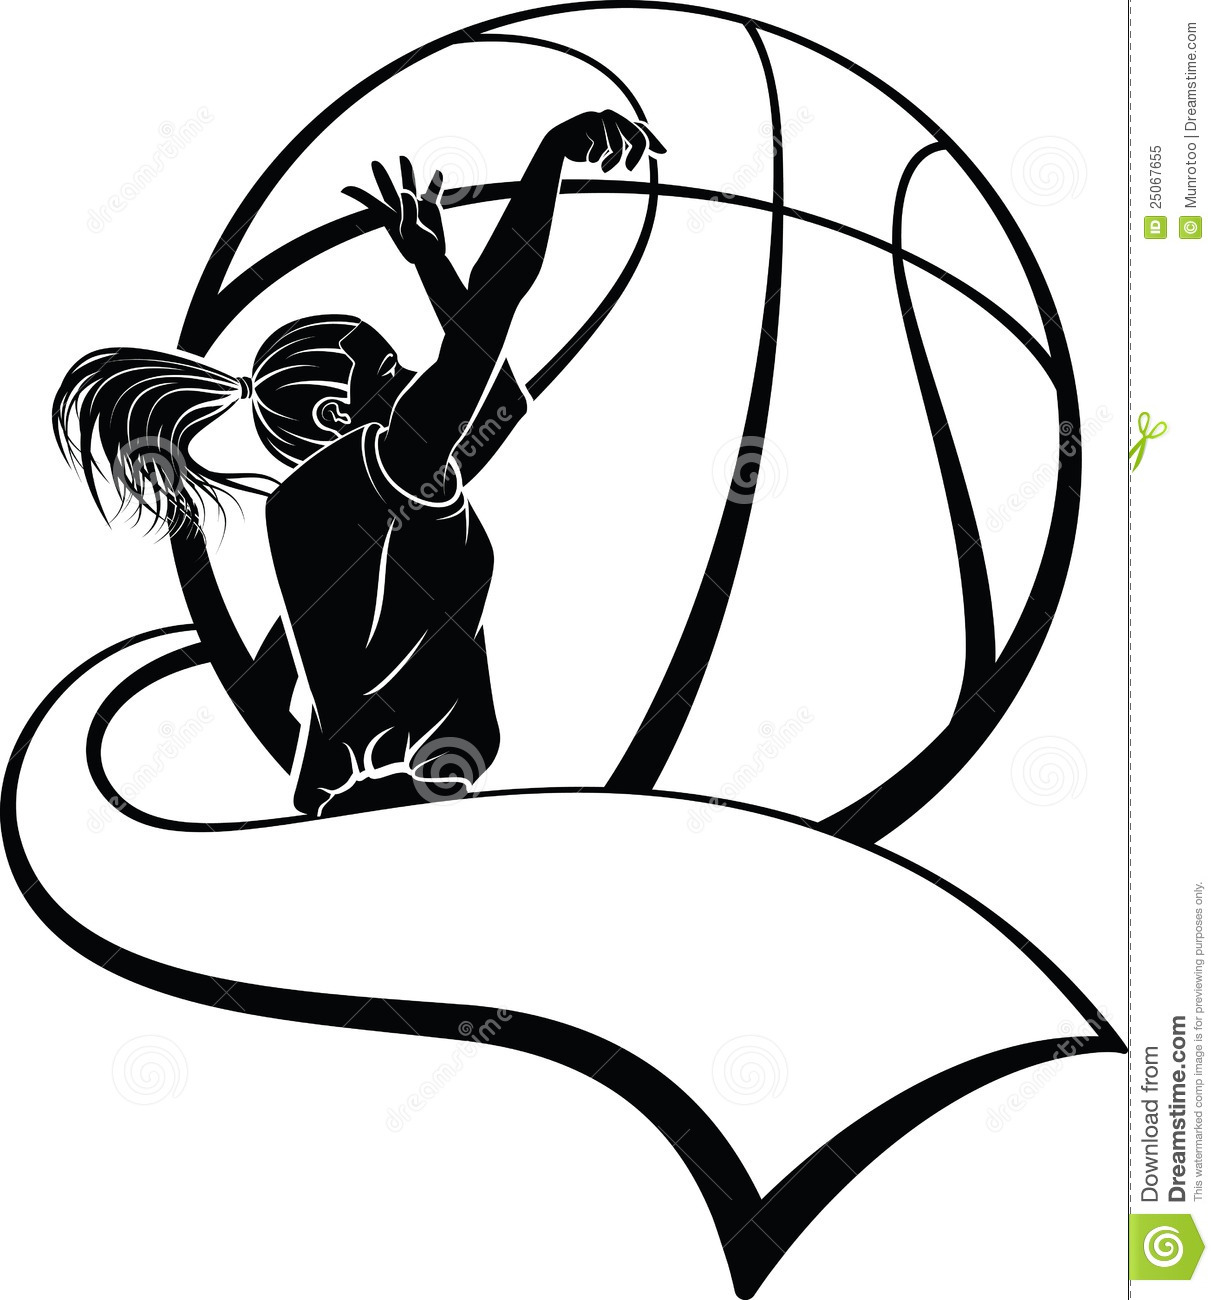 1218x1300 Top 69 Basketball Clip Art